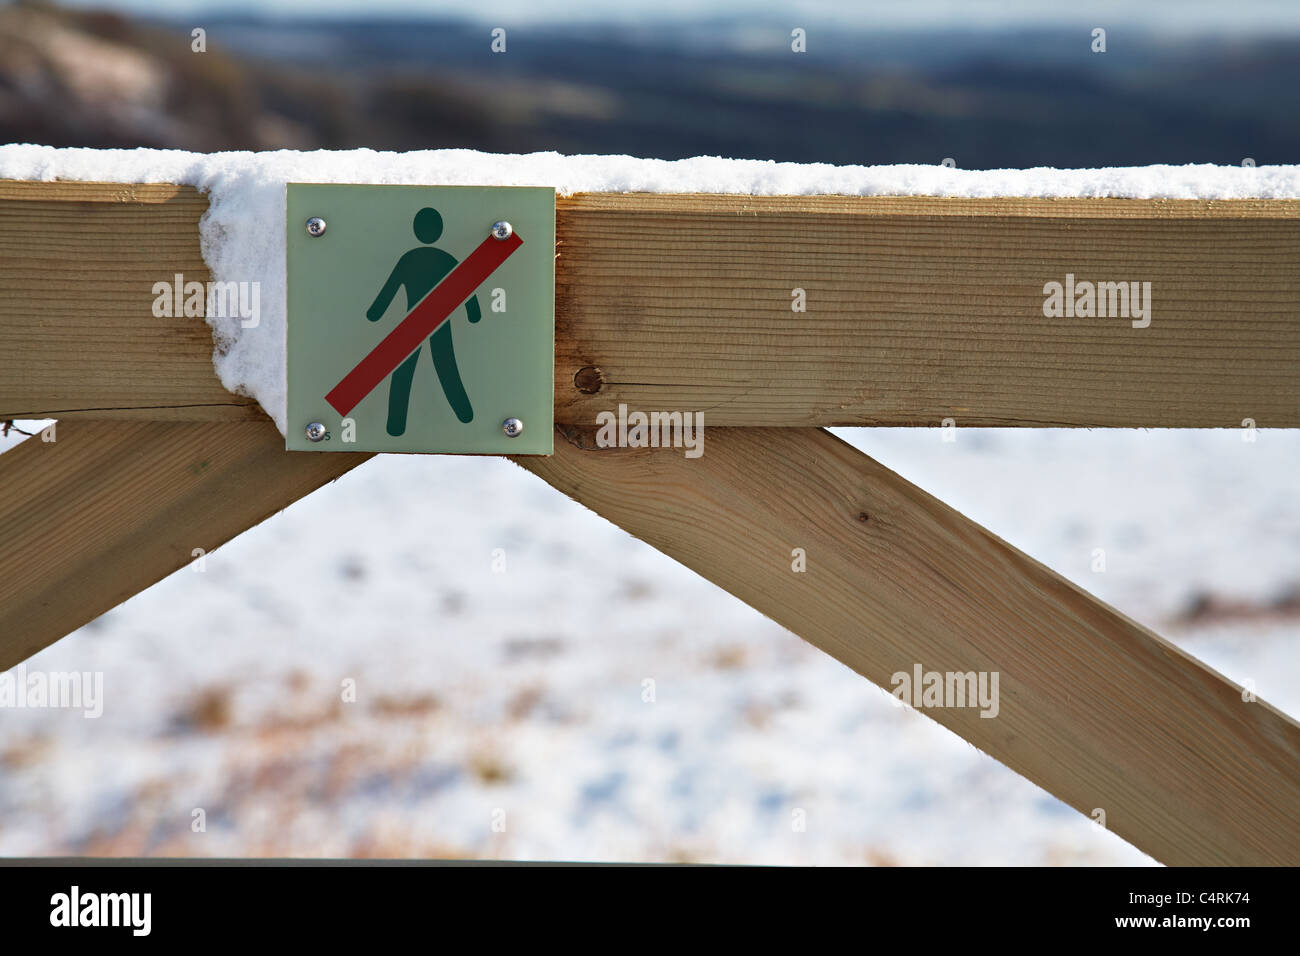 No Open Access sign on a gate, Brecon Beacons National Park, Wales - Stock Image